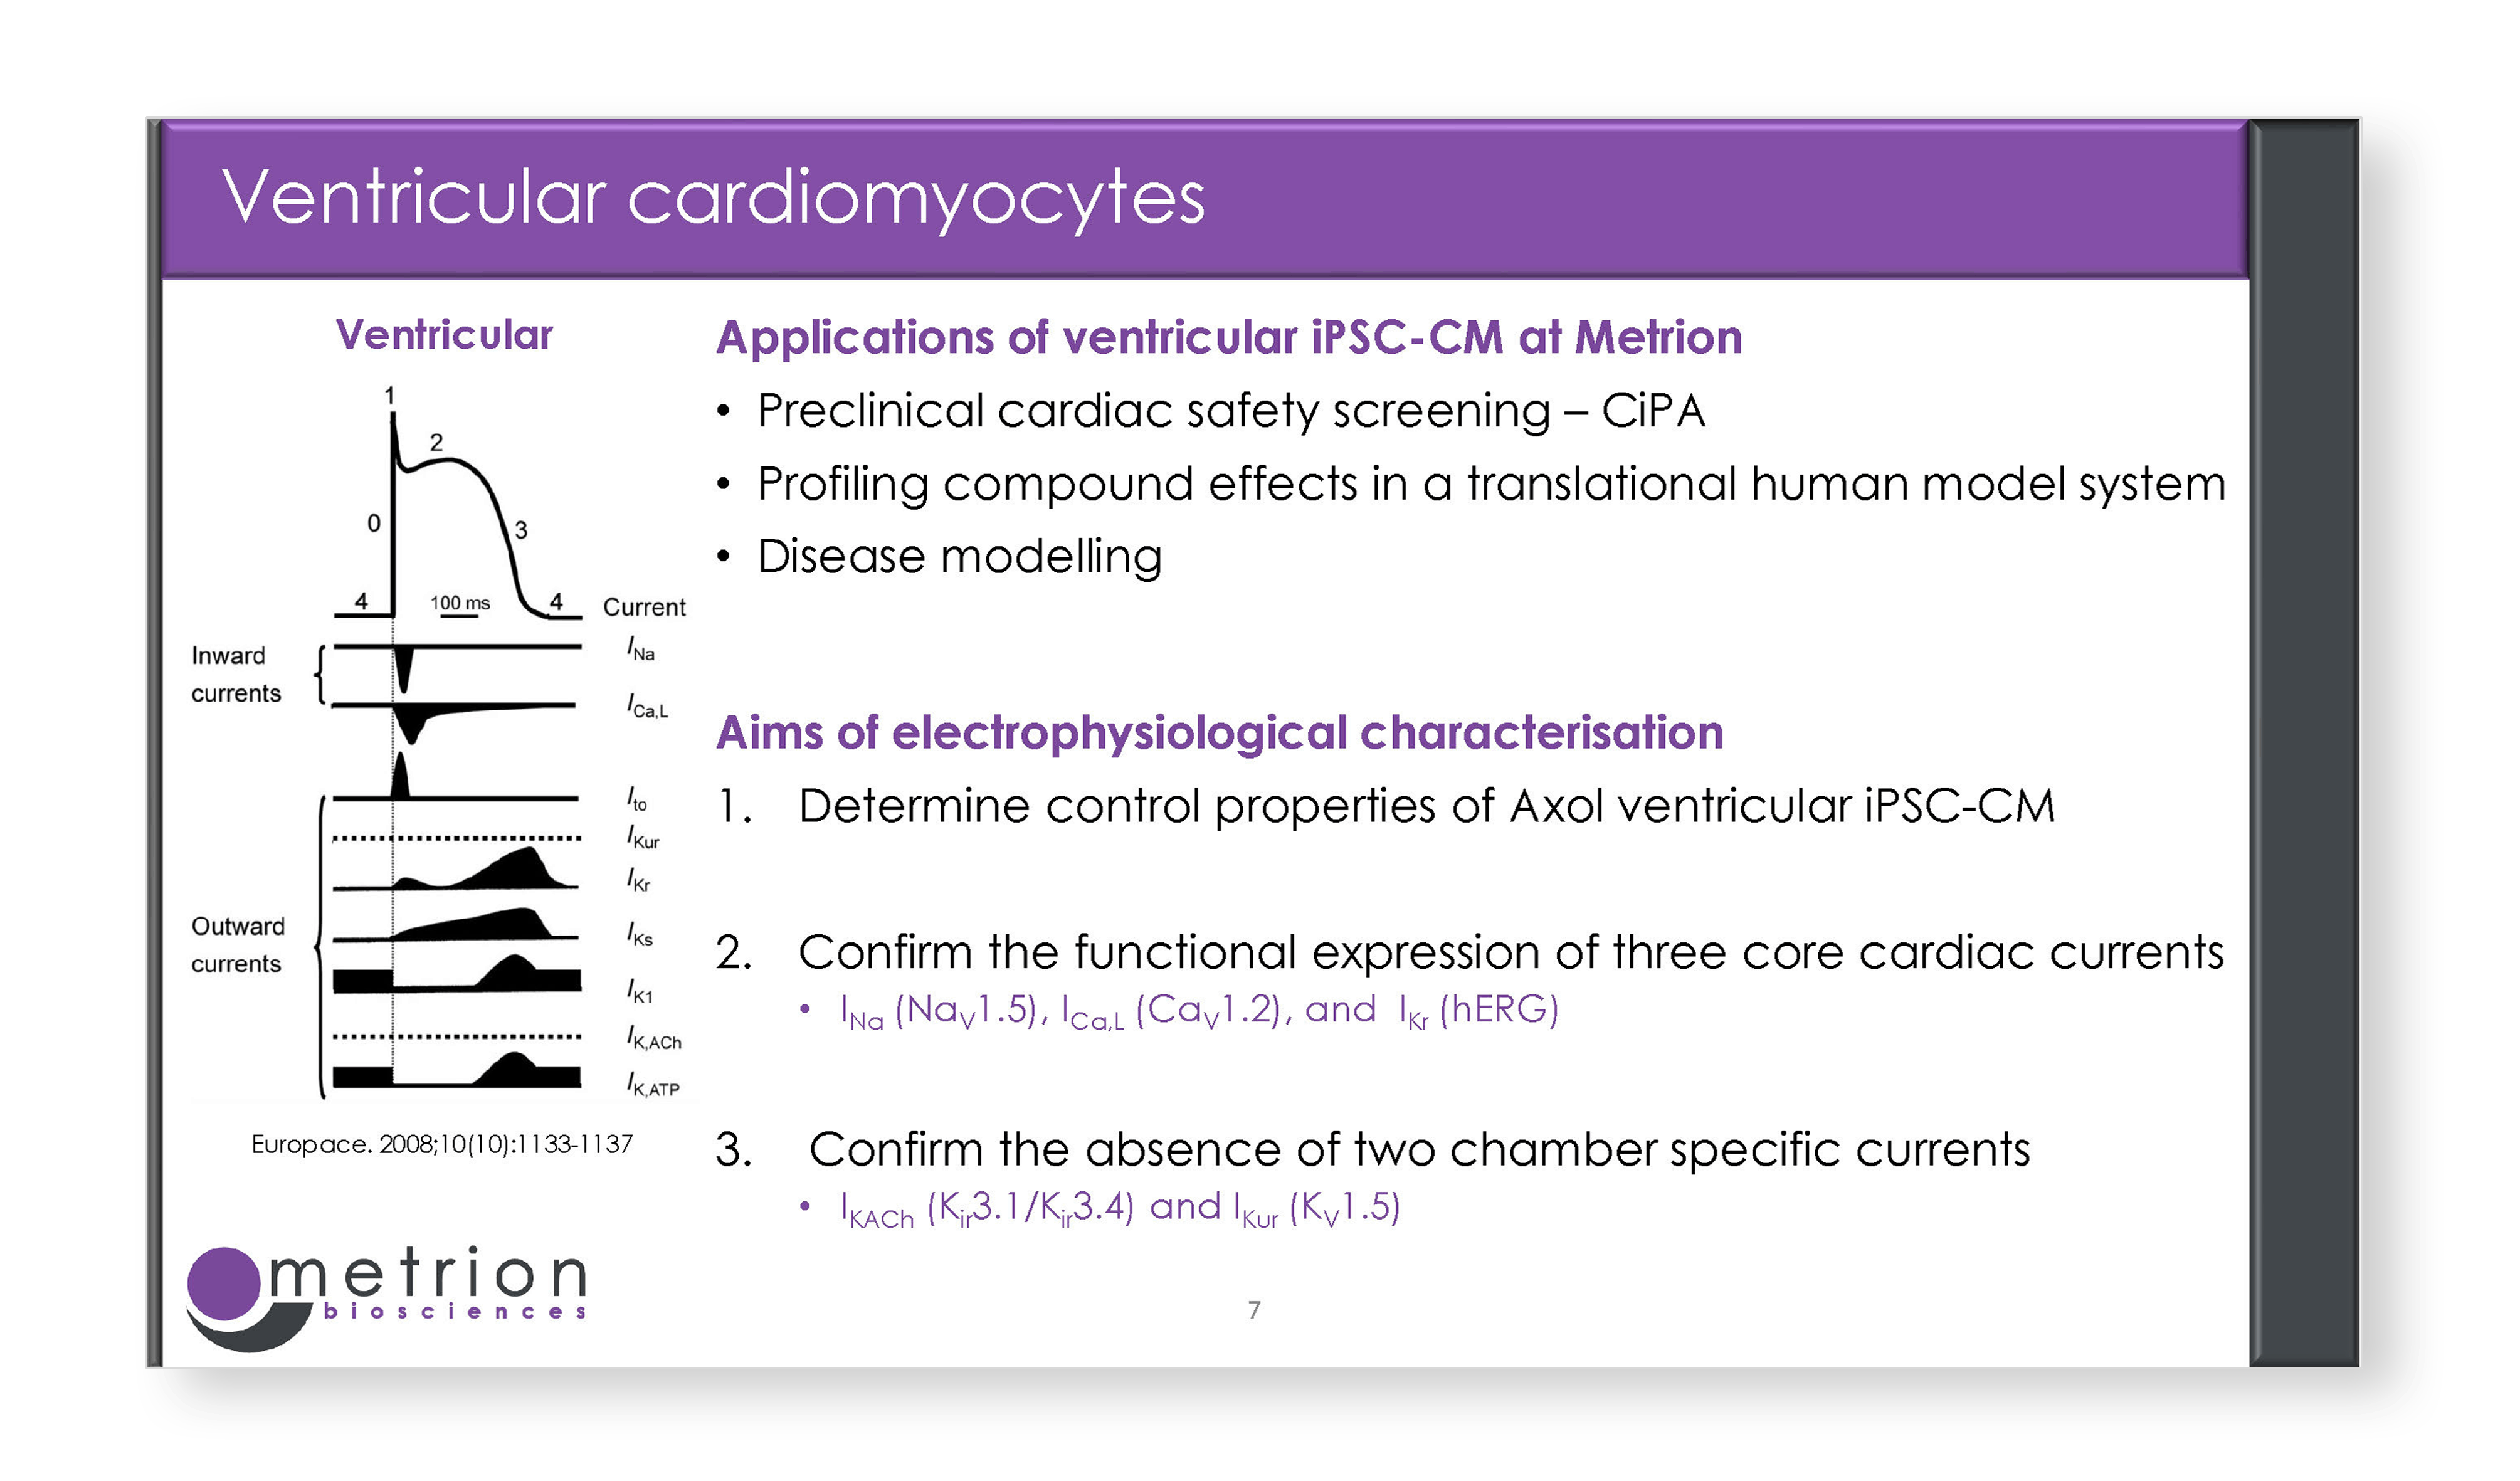 Applications of ventricular iPSC CM at Metrion